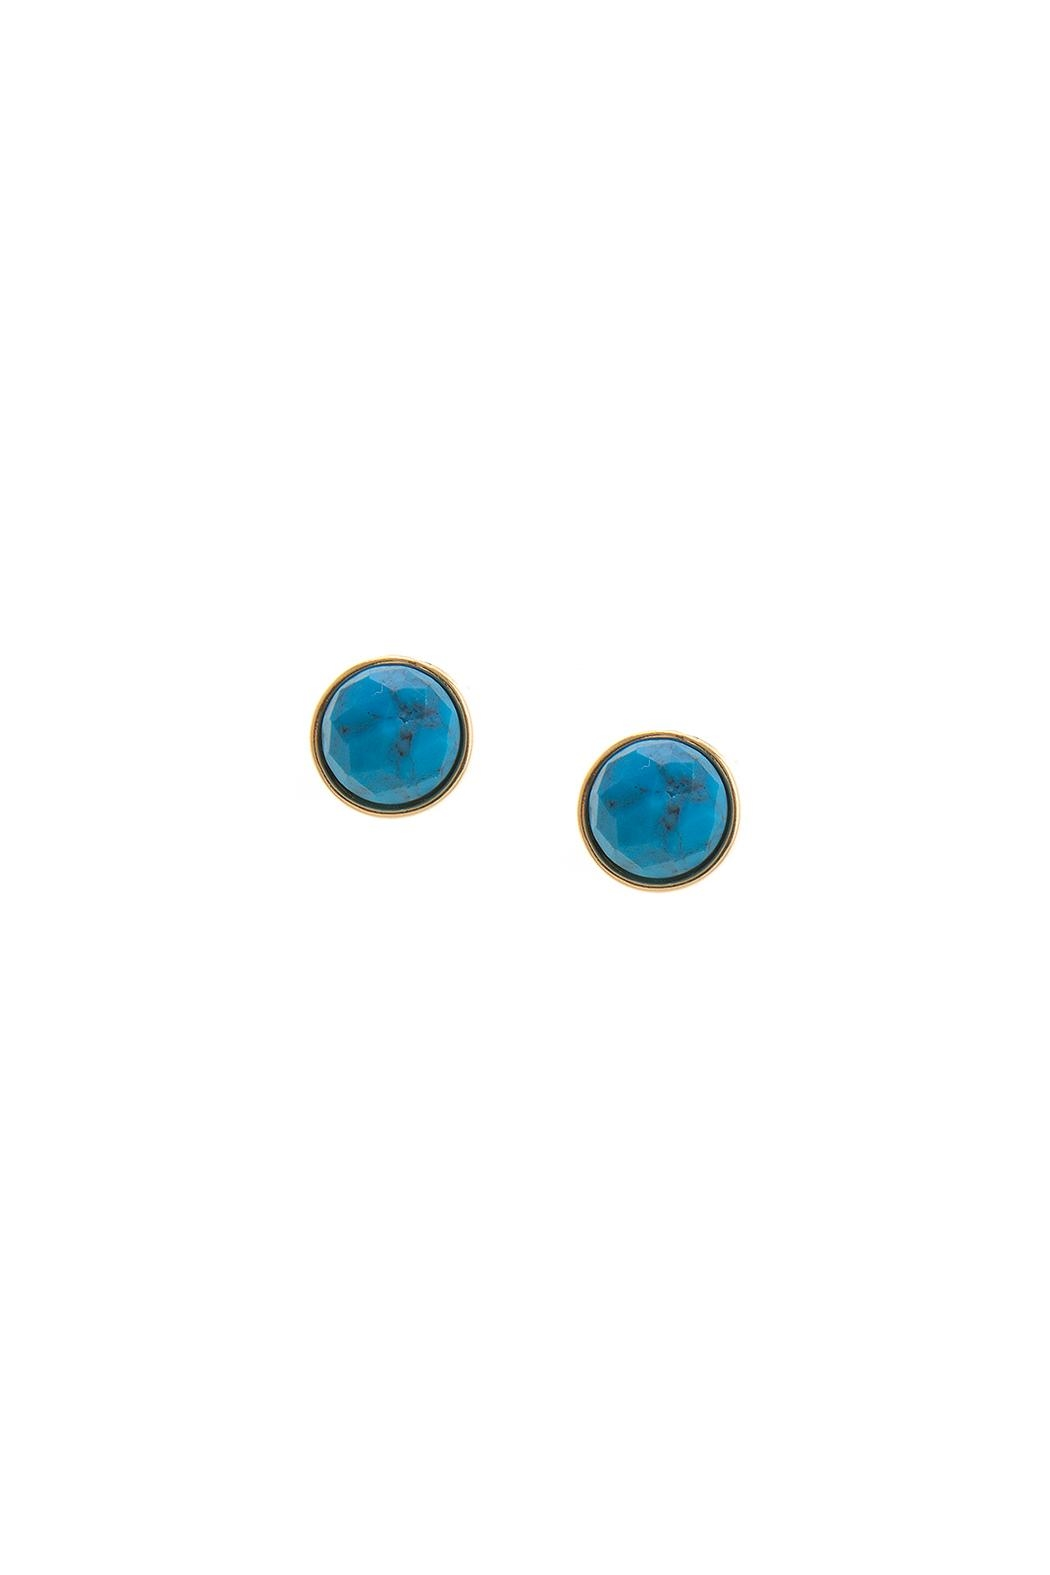 Wild Lilies Jewelry  Turquoise Stud Earrings - Main Image